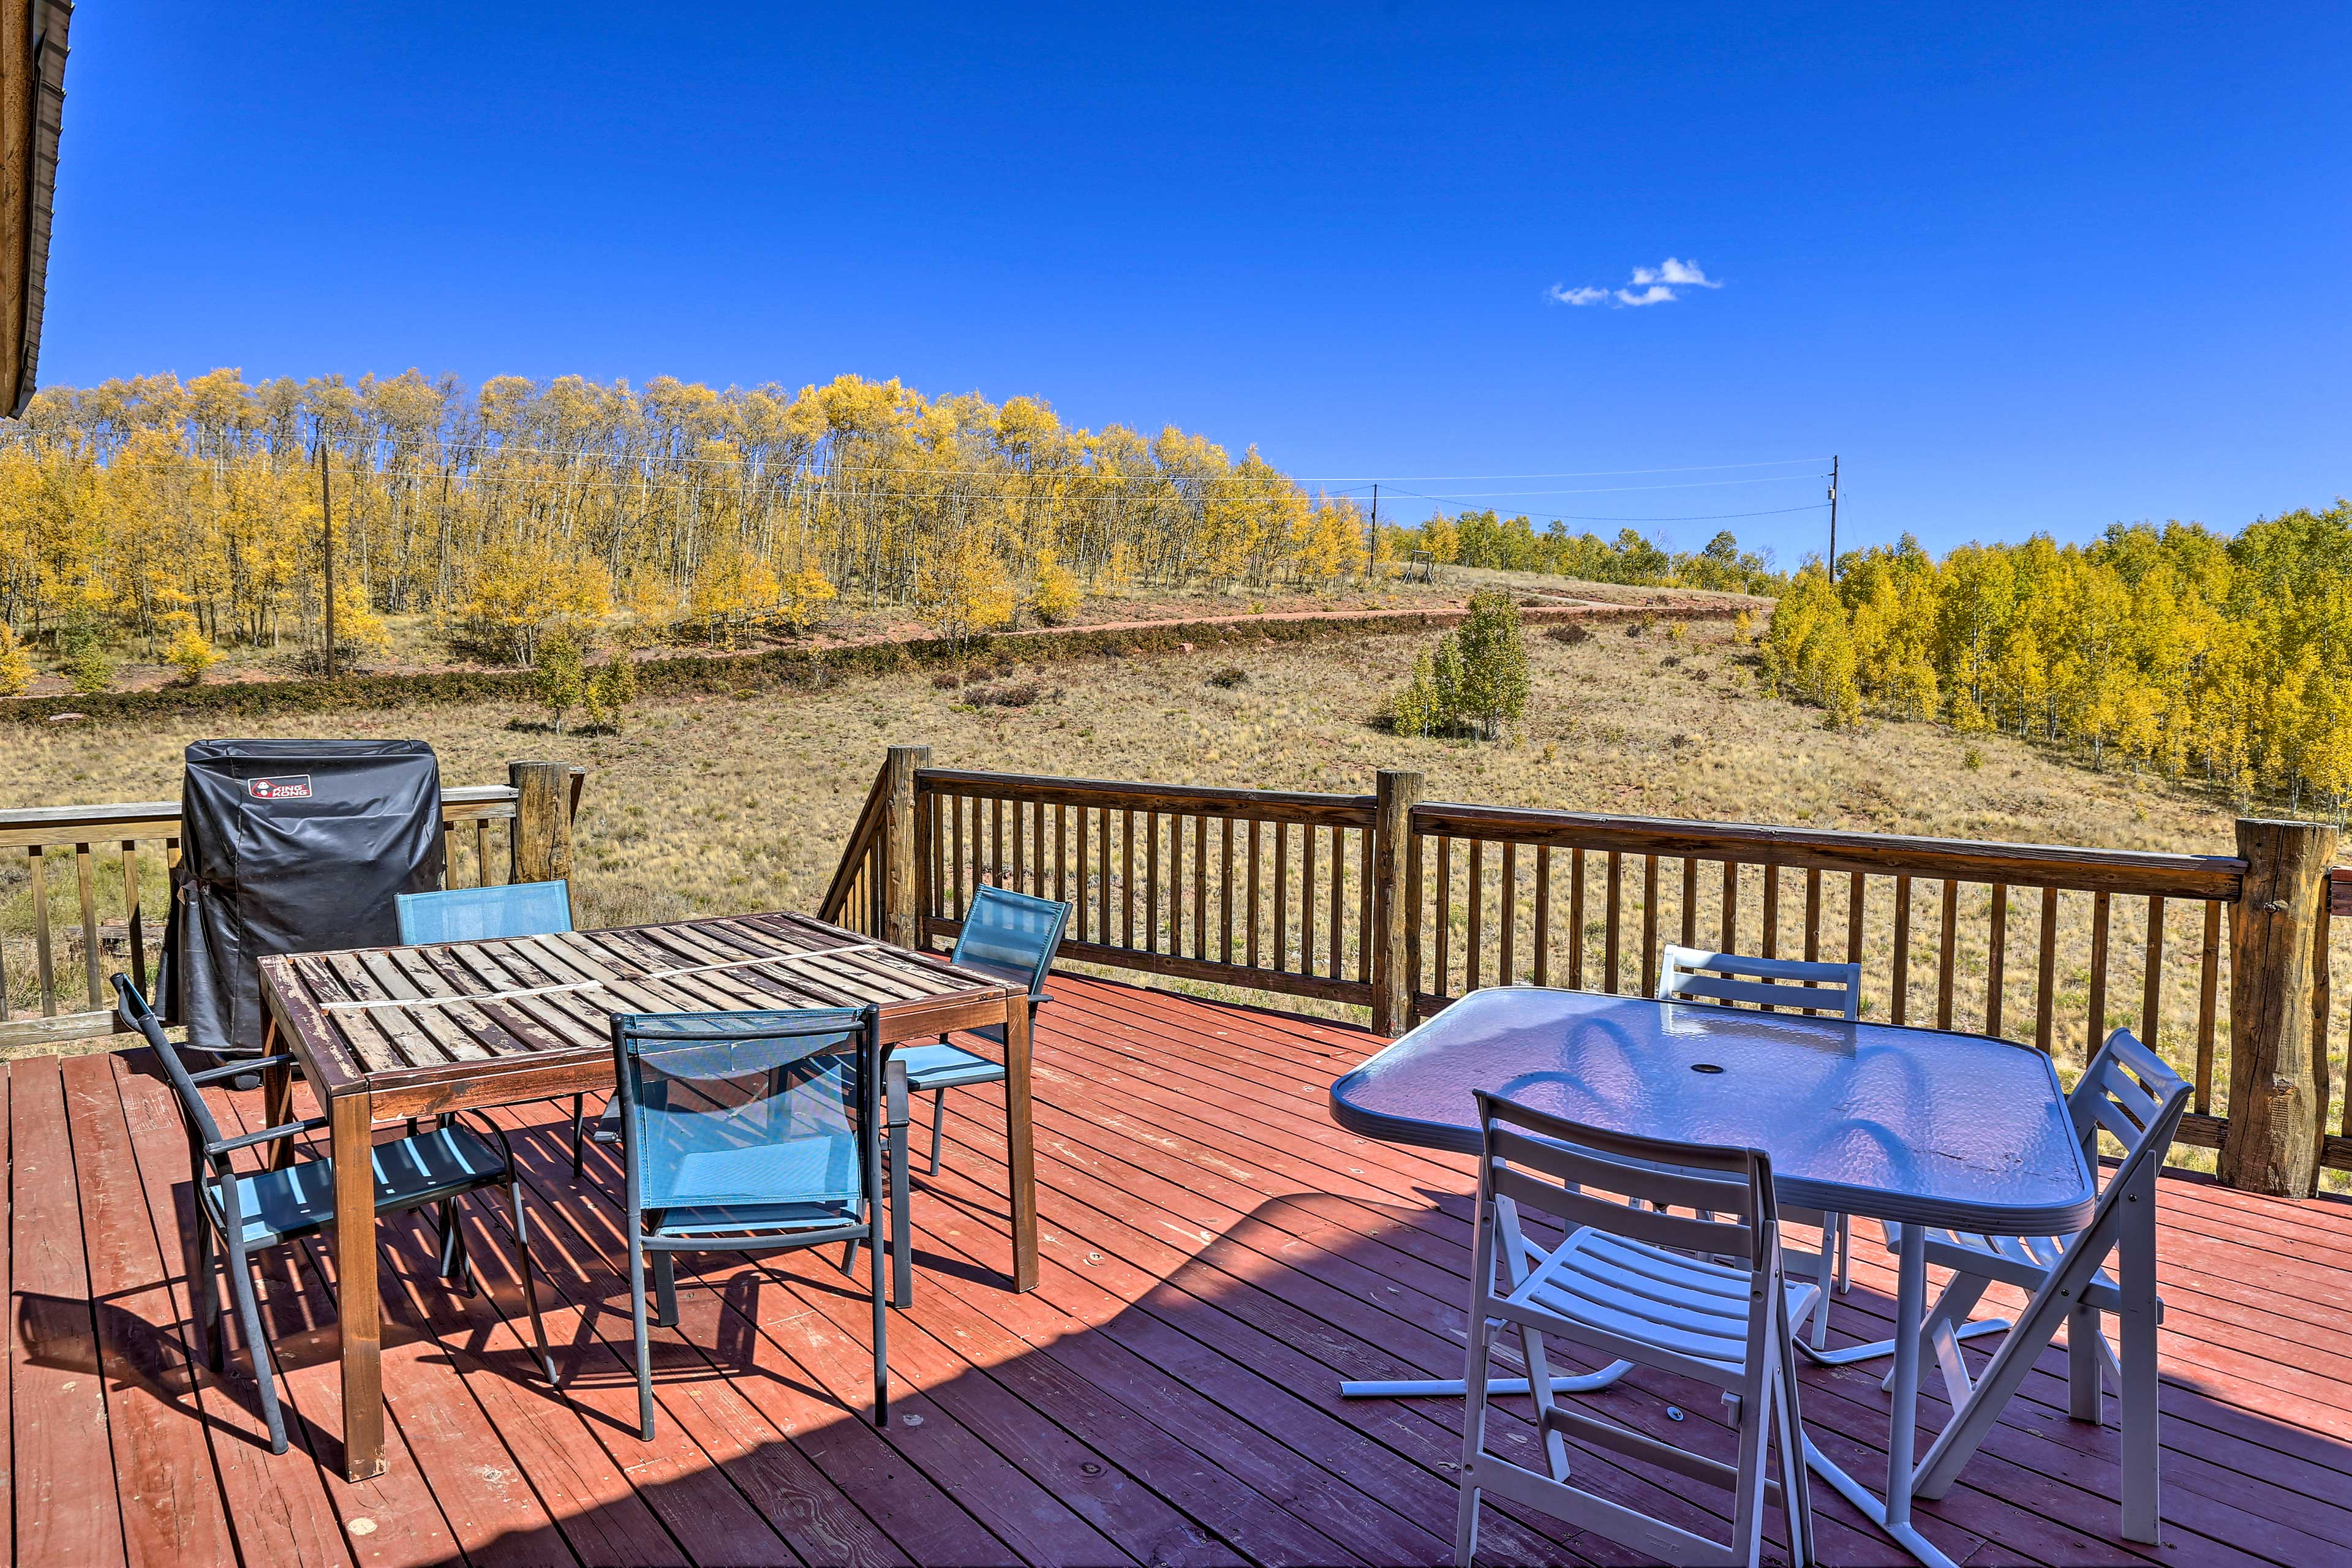 Kick off your vacation with a cookout on the expansive deck.